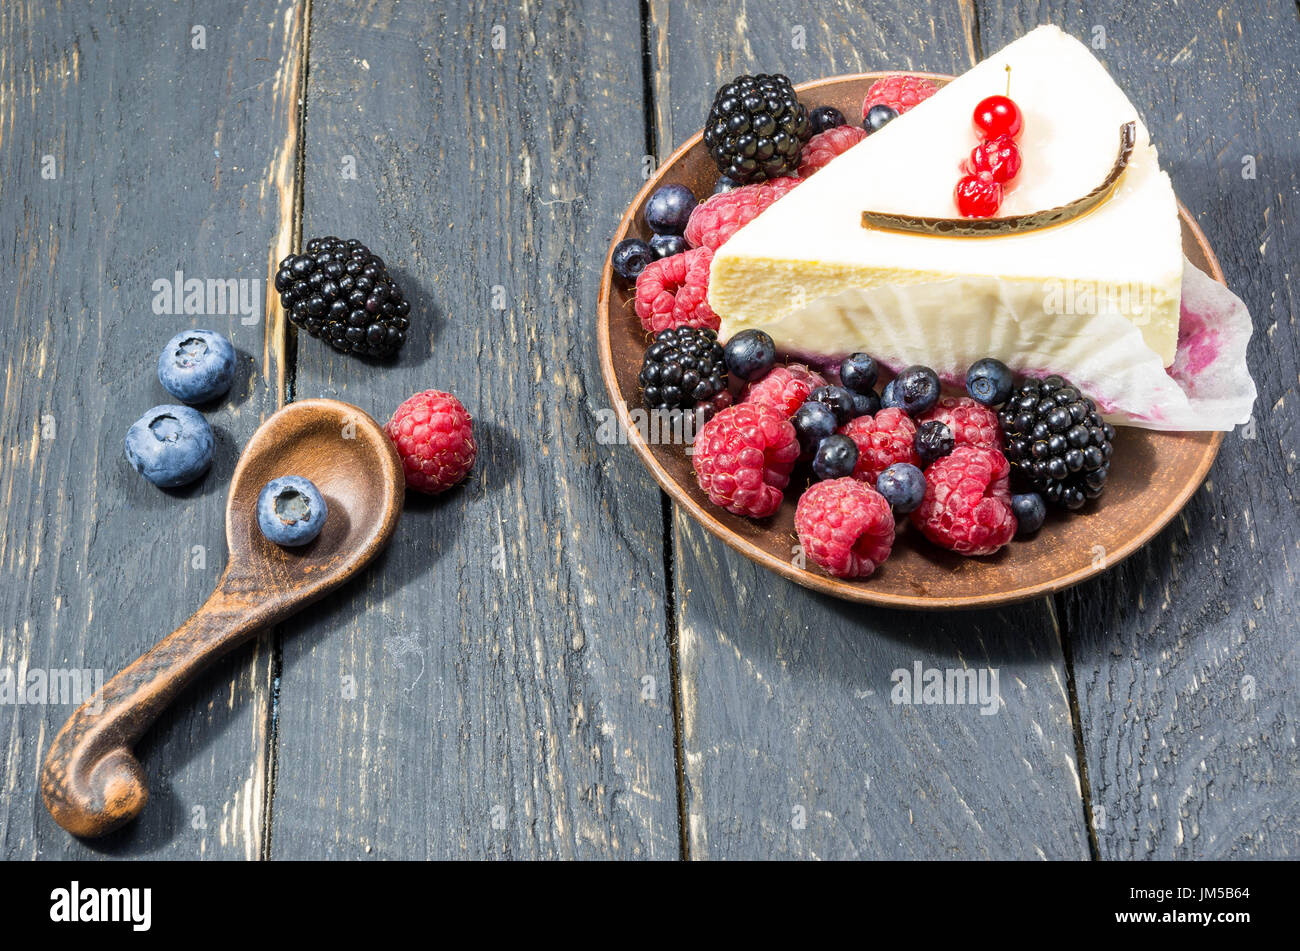 Dessert menu with berries in earthenware. Multicolored forest berries. - Stock Image